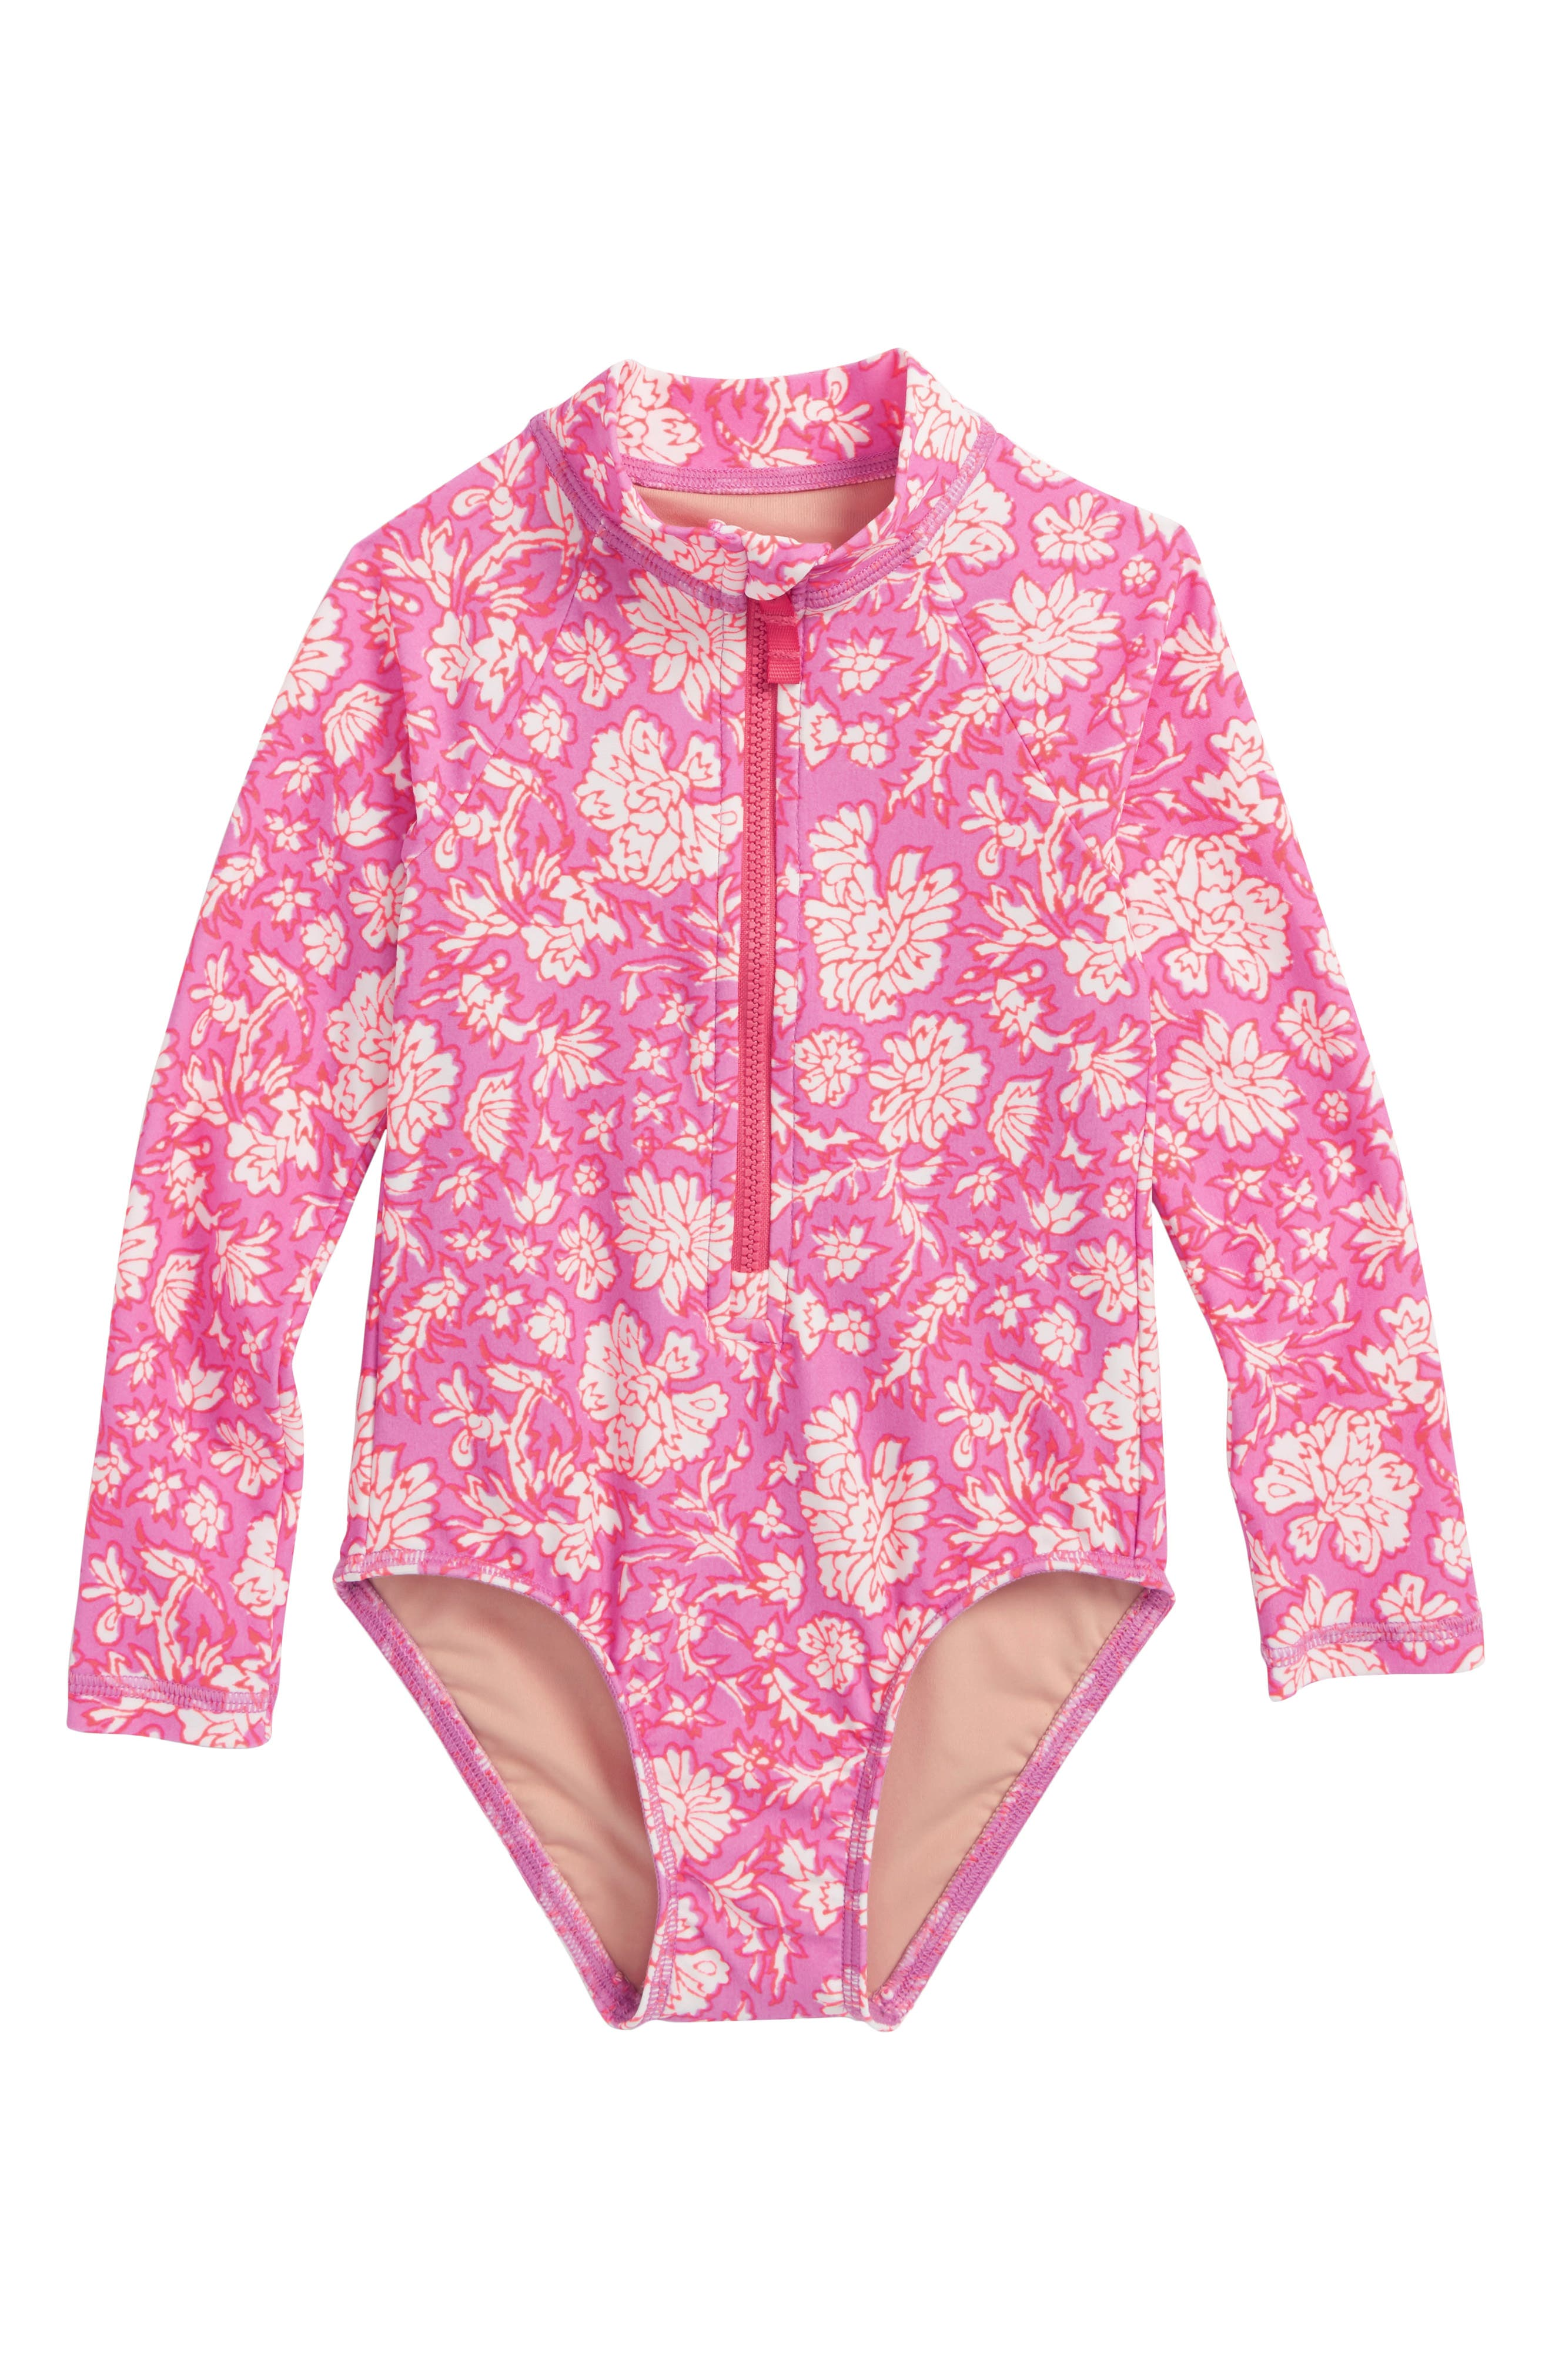 SZ Blockprints<sup>™</sup> Floral One-Piece Rashguard,                         Main,                         color, 900